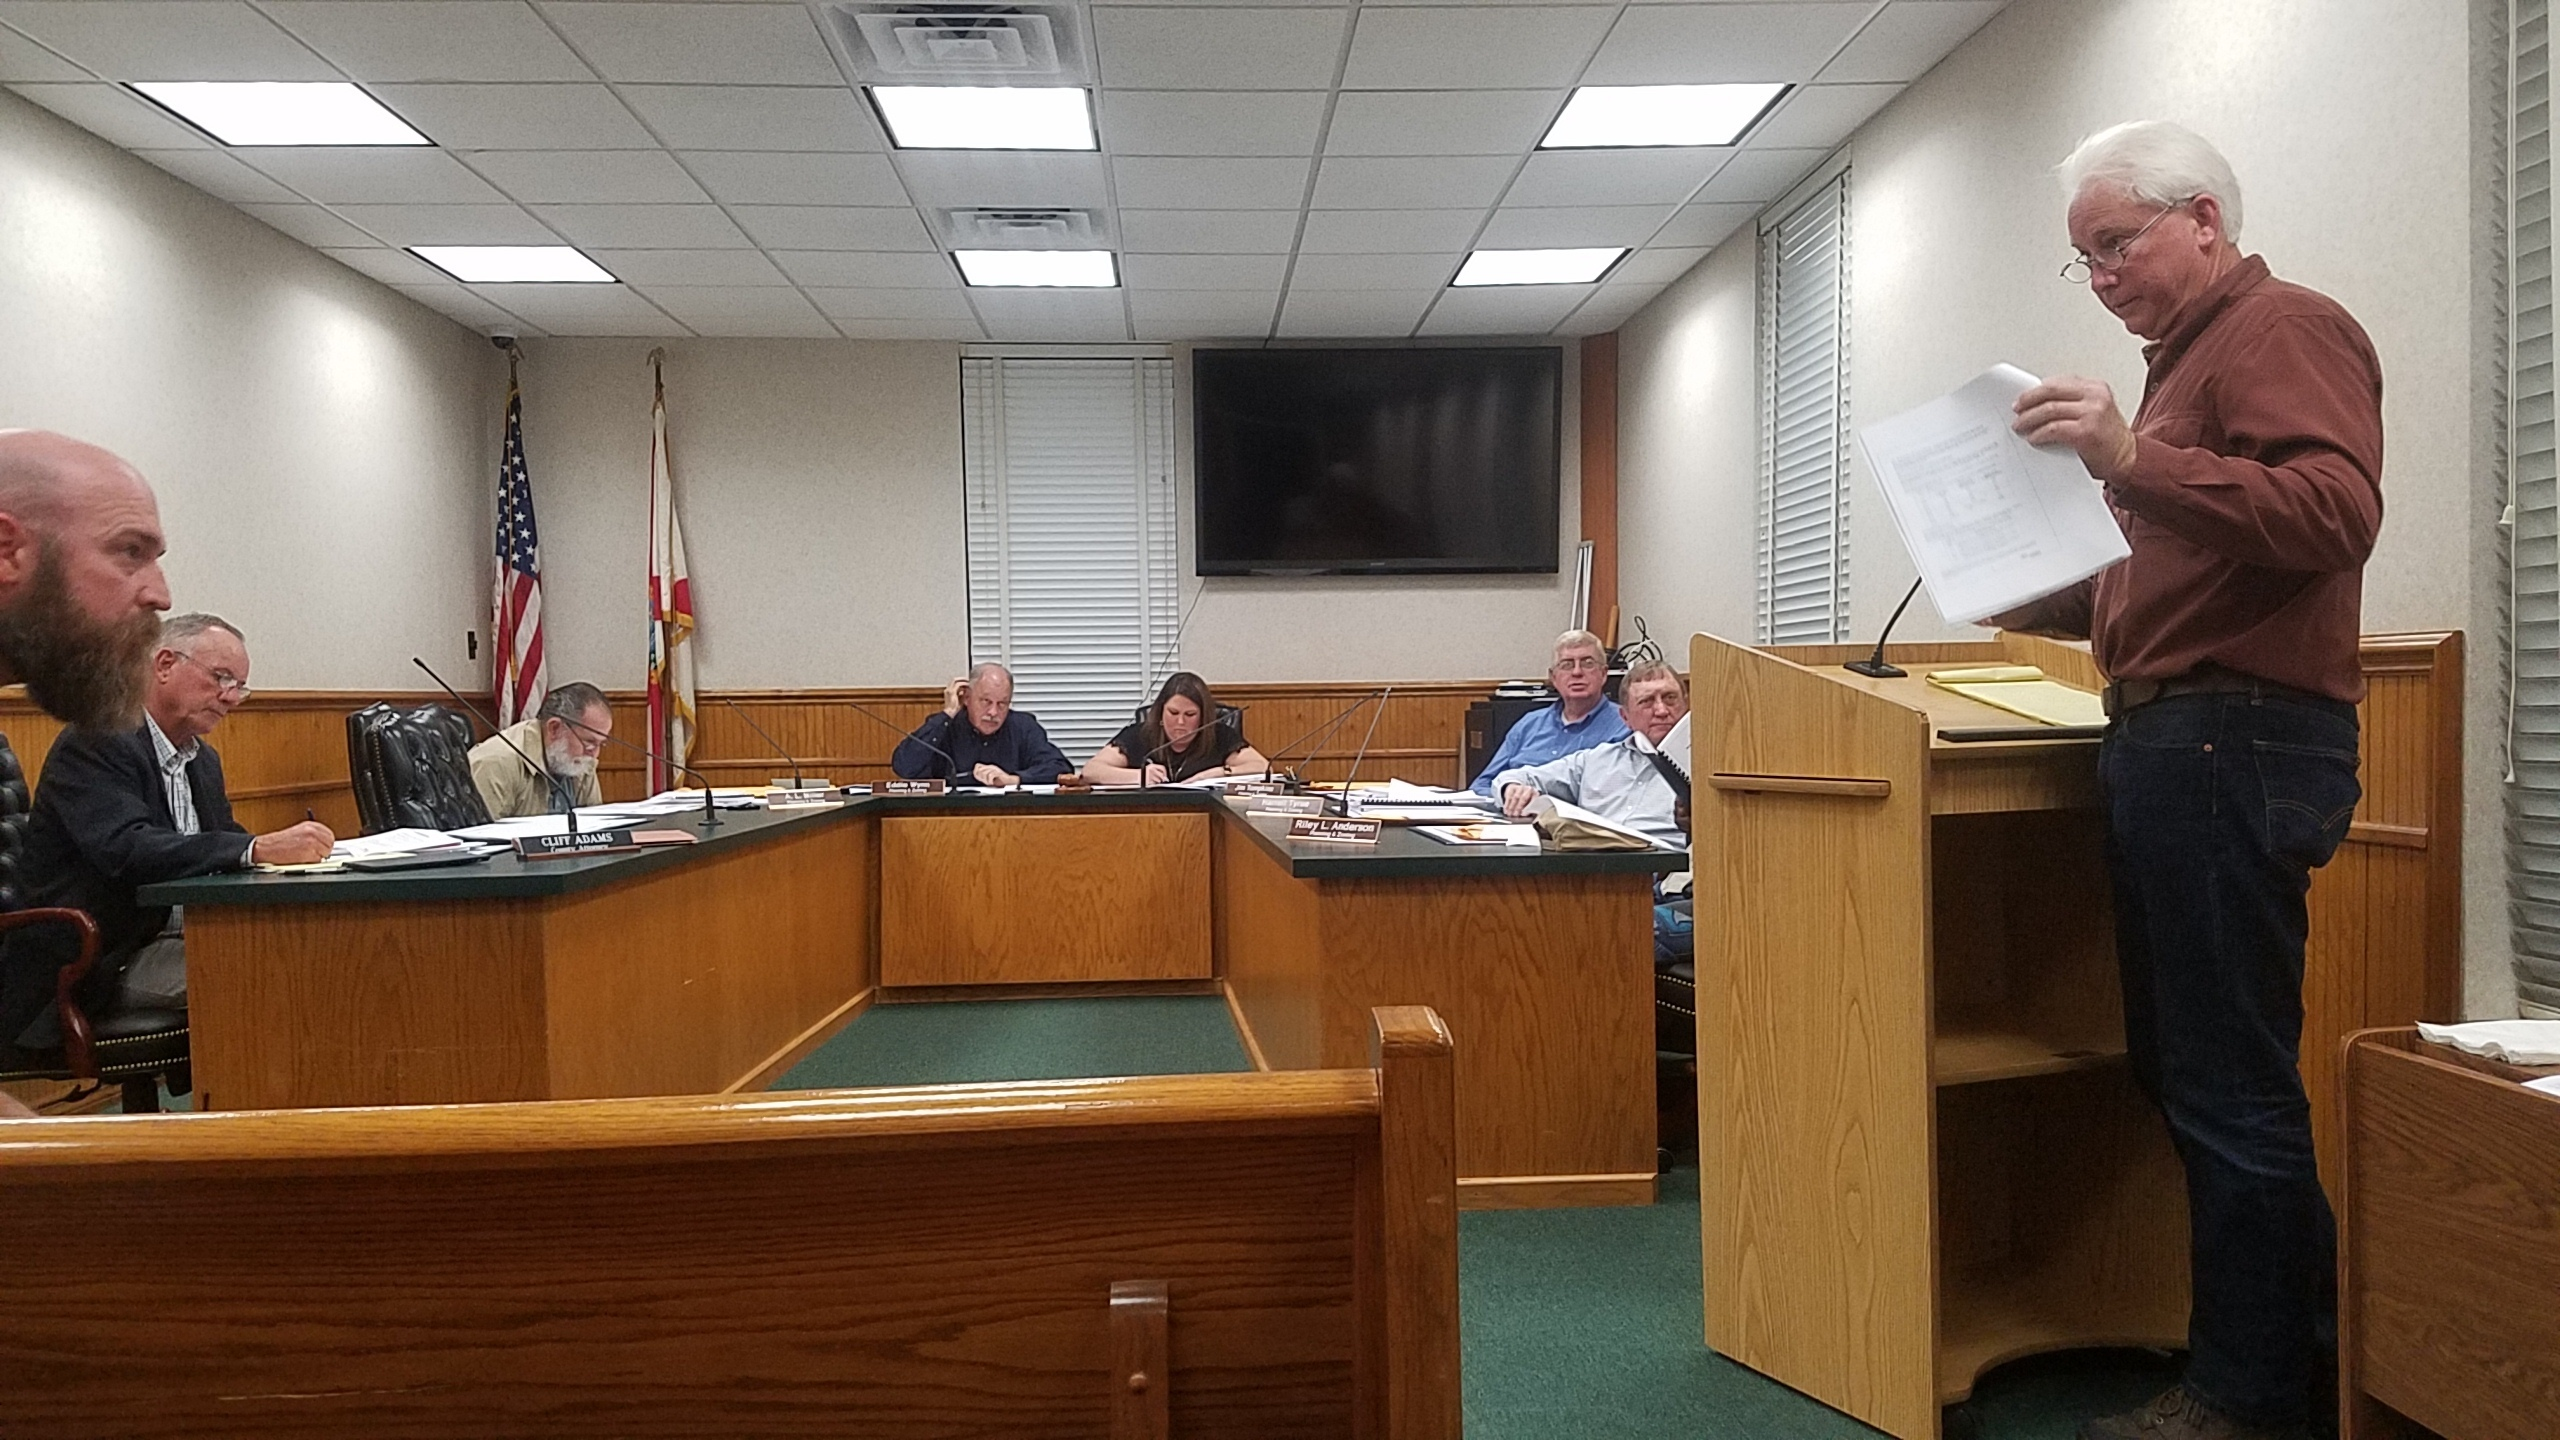 2560x1440 Chris Mericle questions consultant, Public Comment, in PCS Phosphate mine permit Public Hearings, Jasper, FL, by John S. Quarterman, for WWALS.net, 23 January 2018